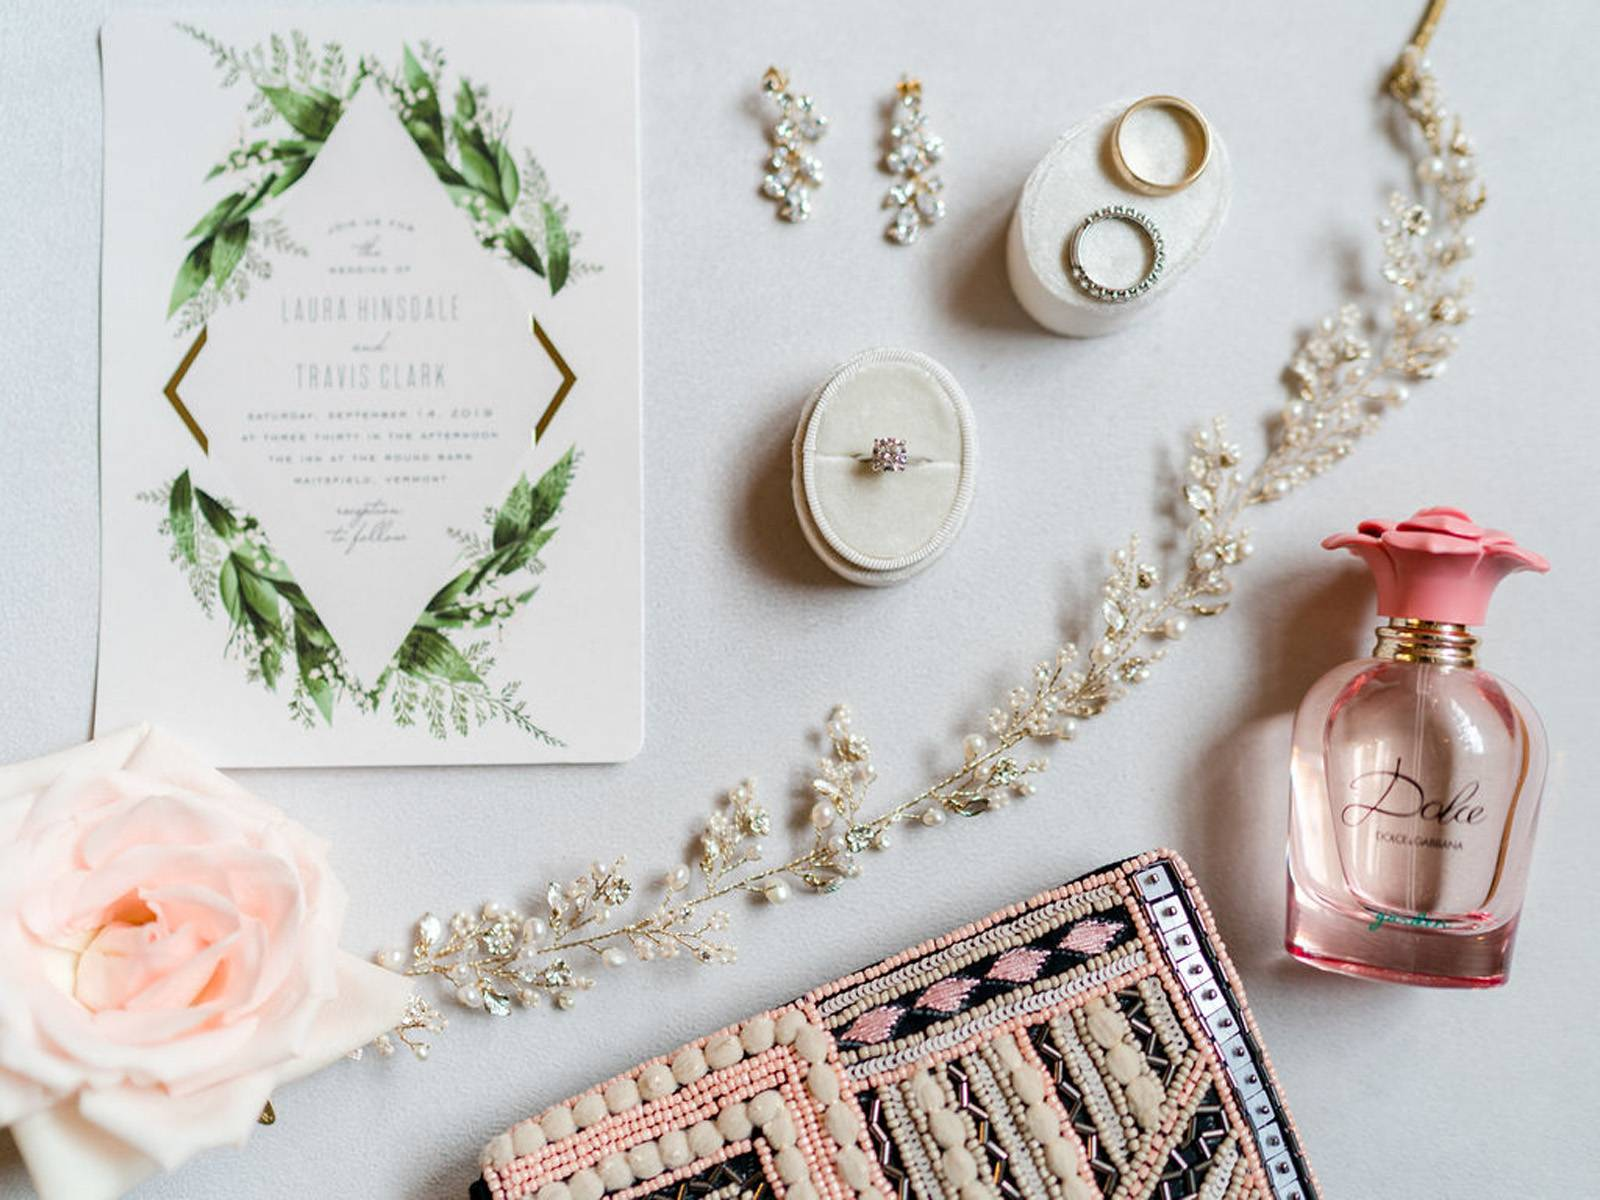 Elegant wedding details including invitation and bridal jewelry